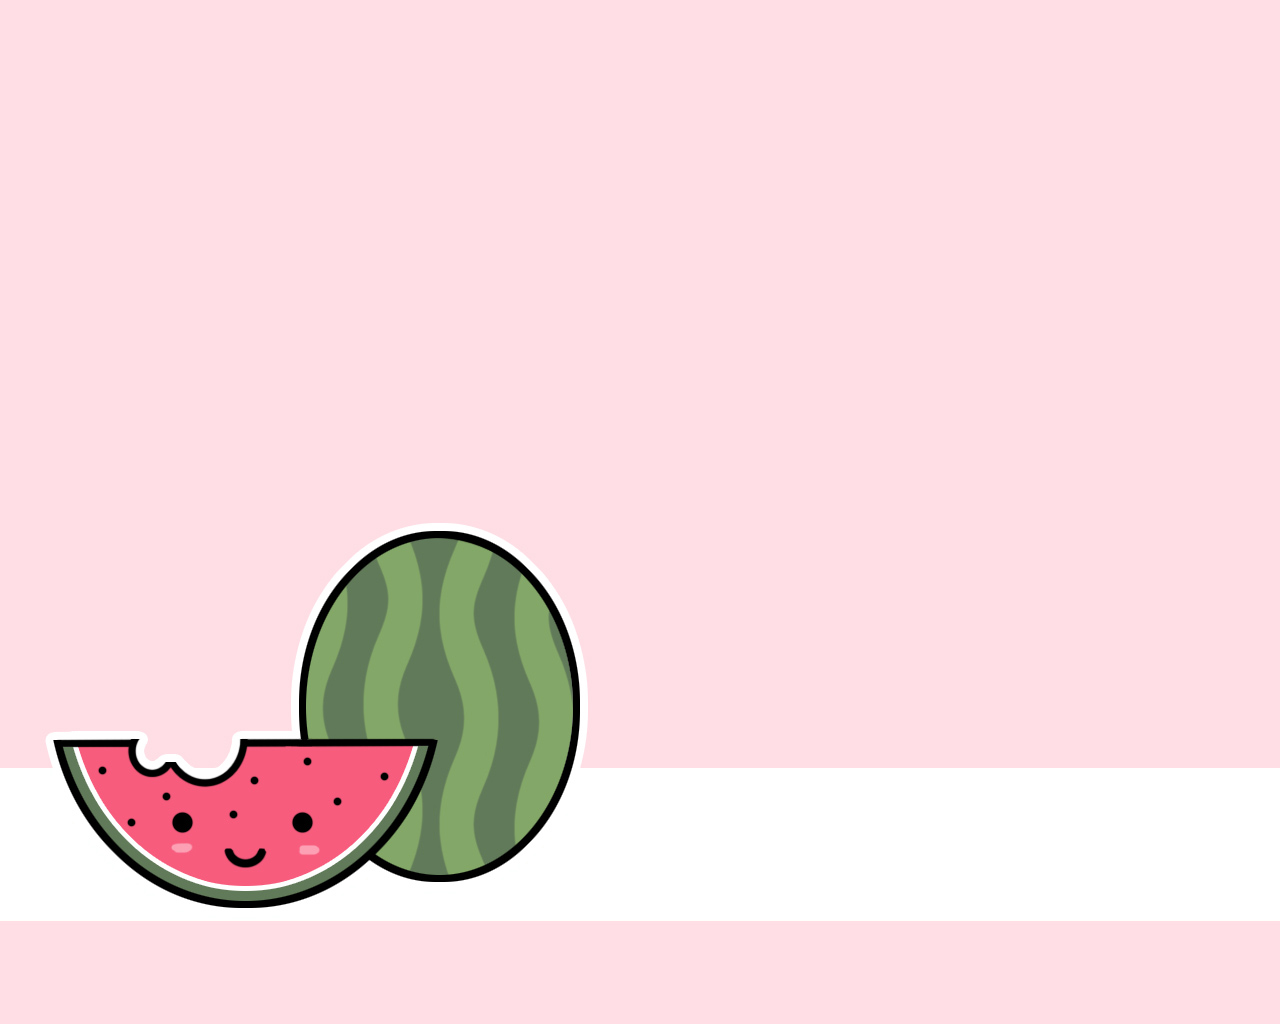 Wallpaper Cute Watermelon 1280x1024px